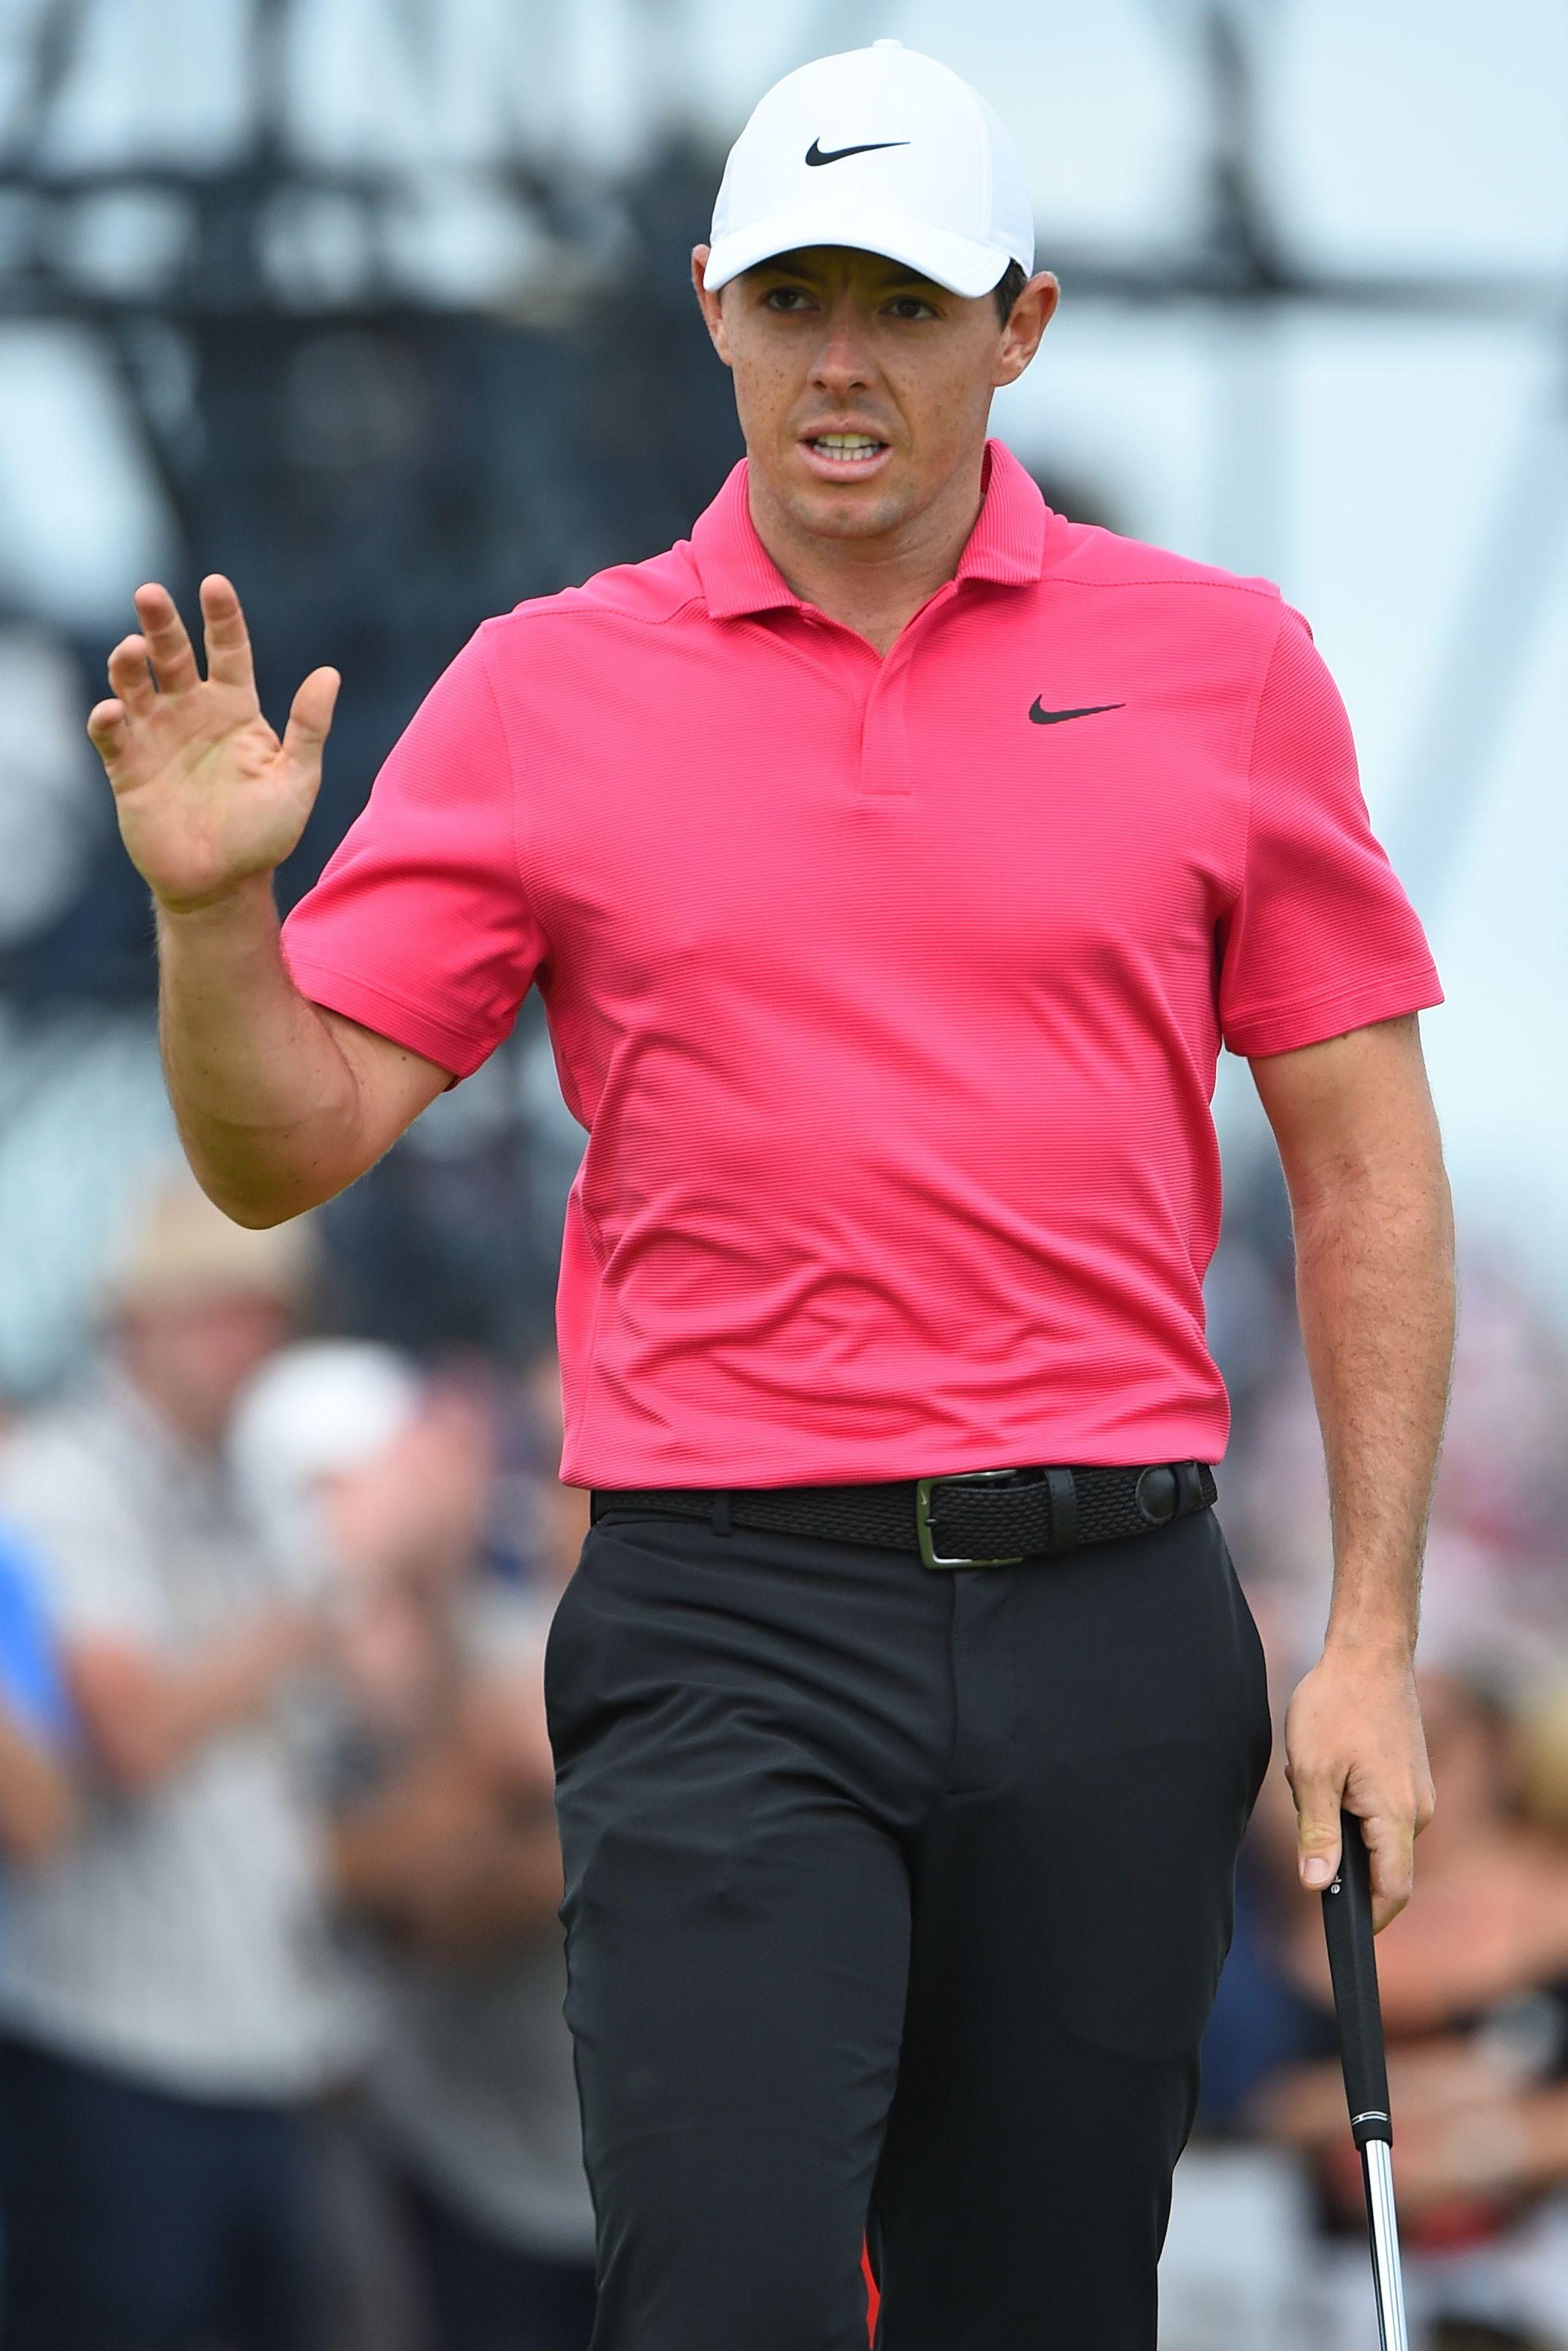 McIlroy finished tied for second at Carnoustie on six under par